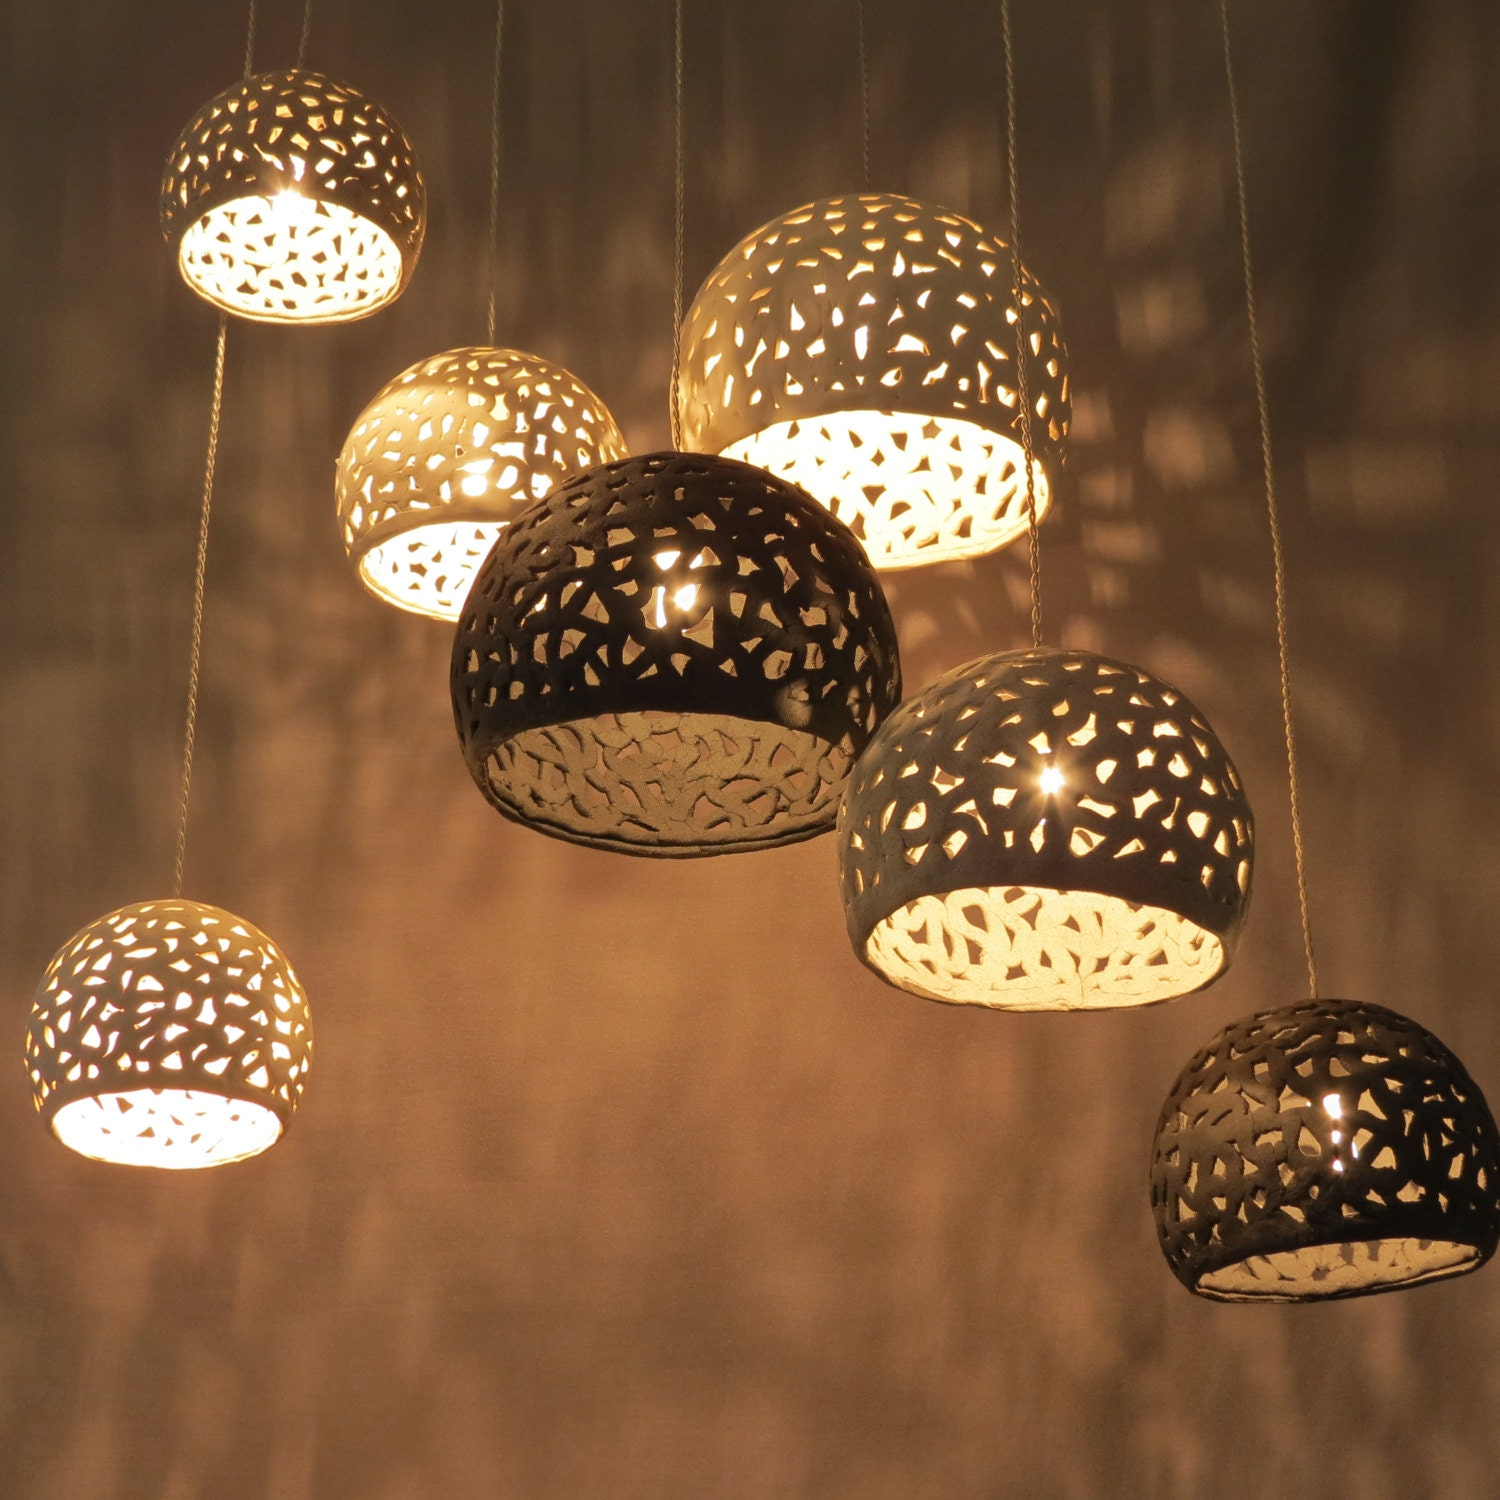 Lighting hanging chandelier 7 ceiling shades Pendant